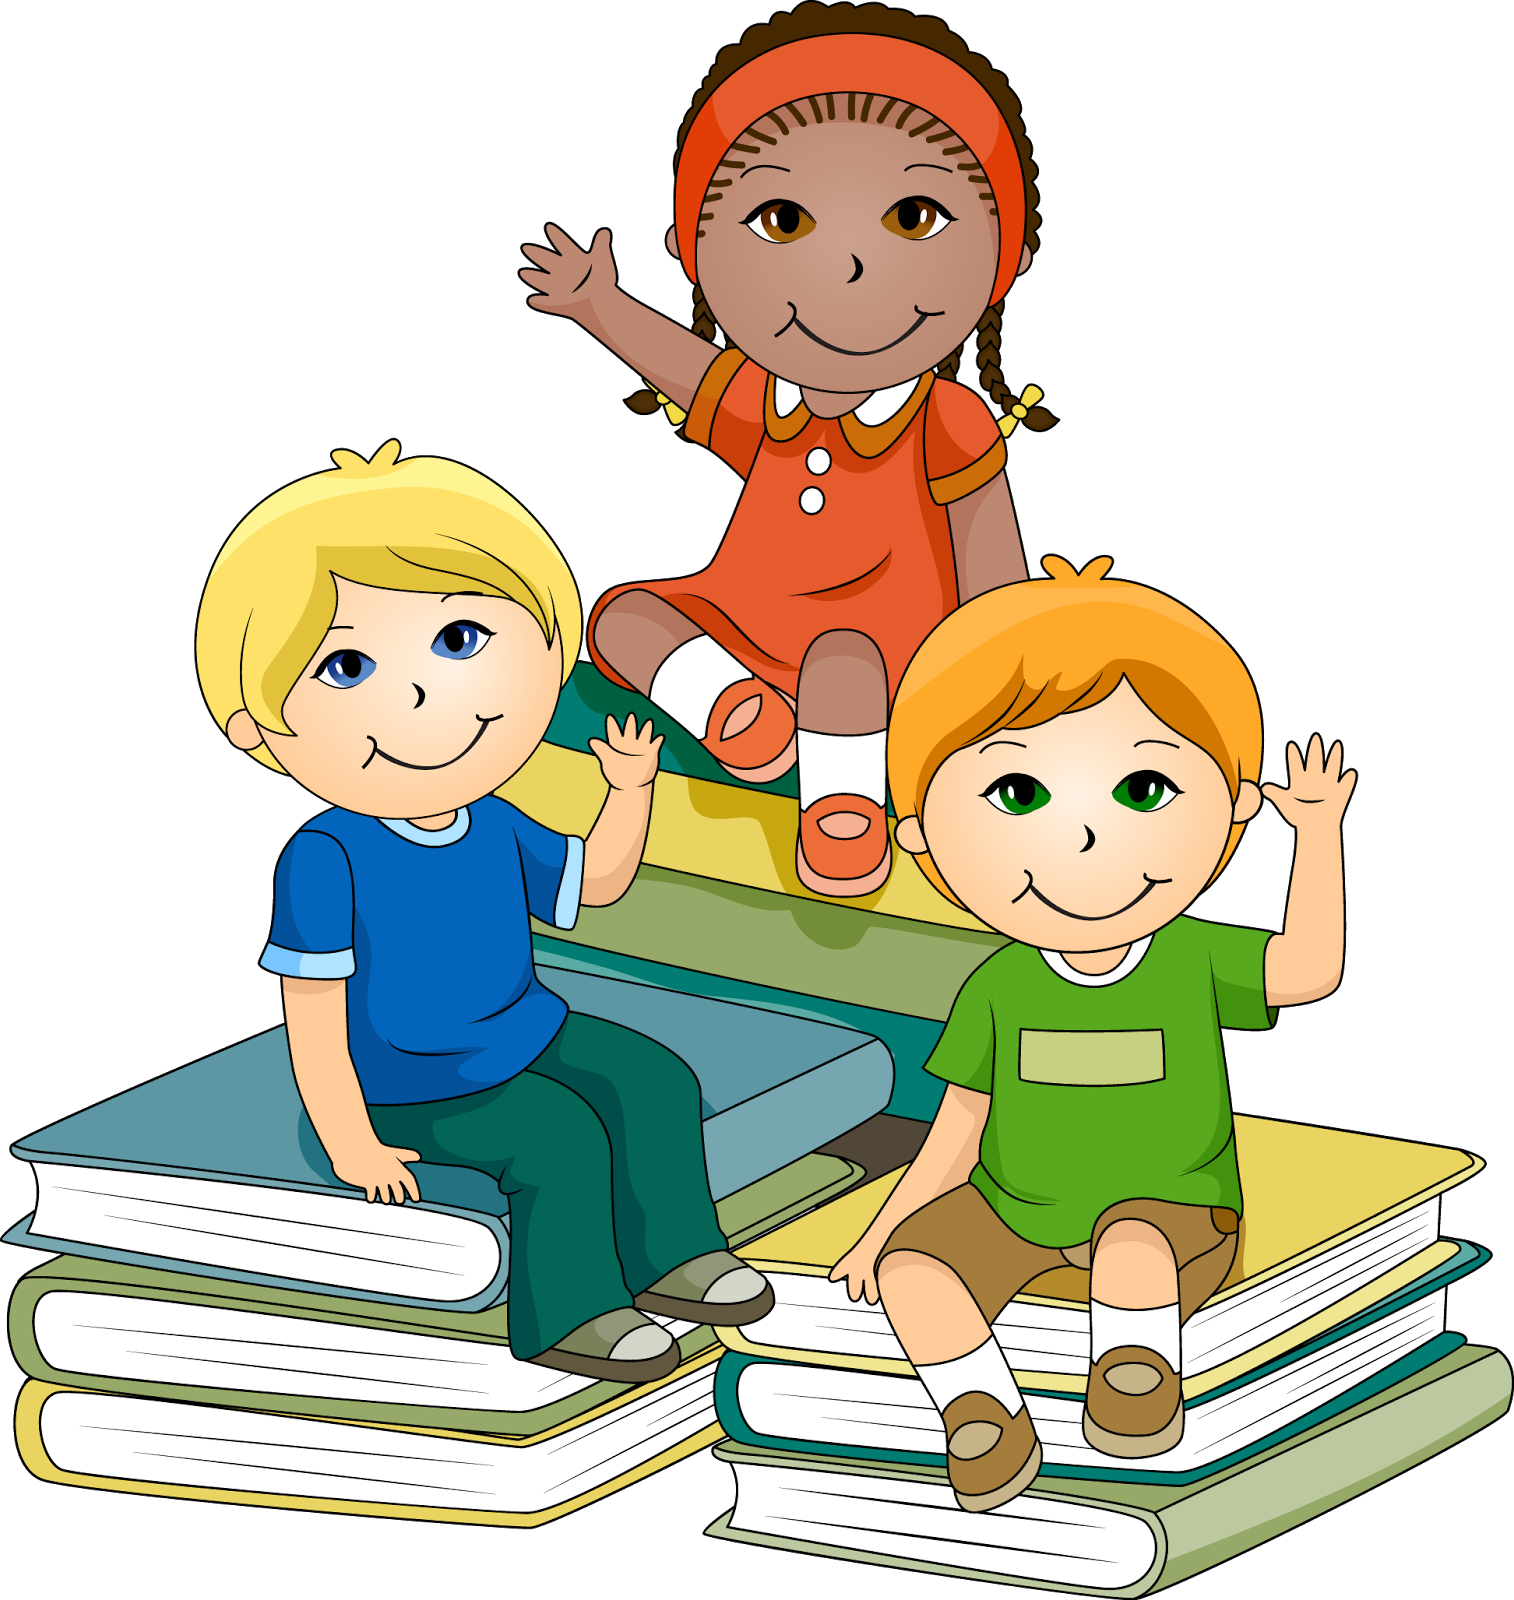 Free Children Reading Books Images, Download Free Clip Art, Free ... clip art freeuse